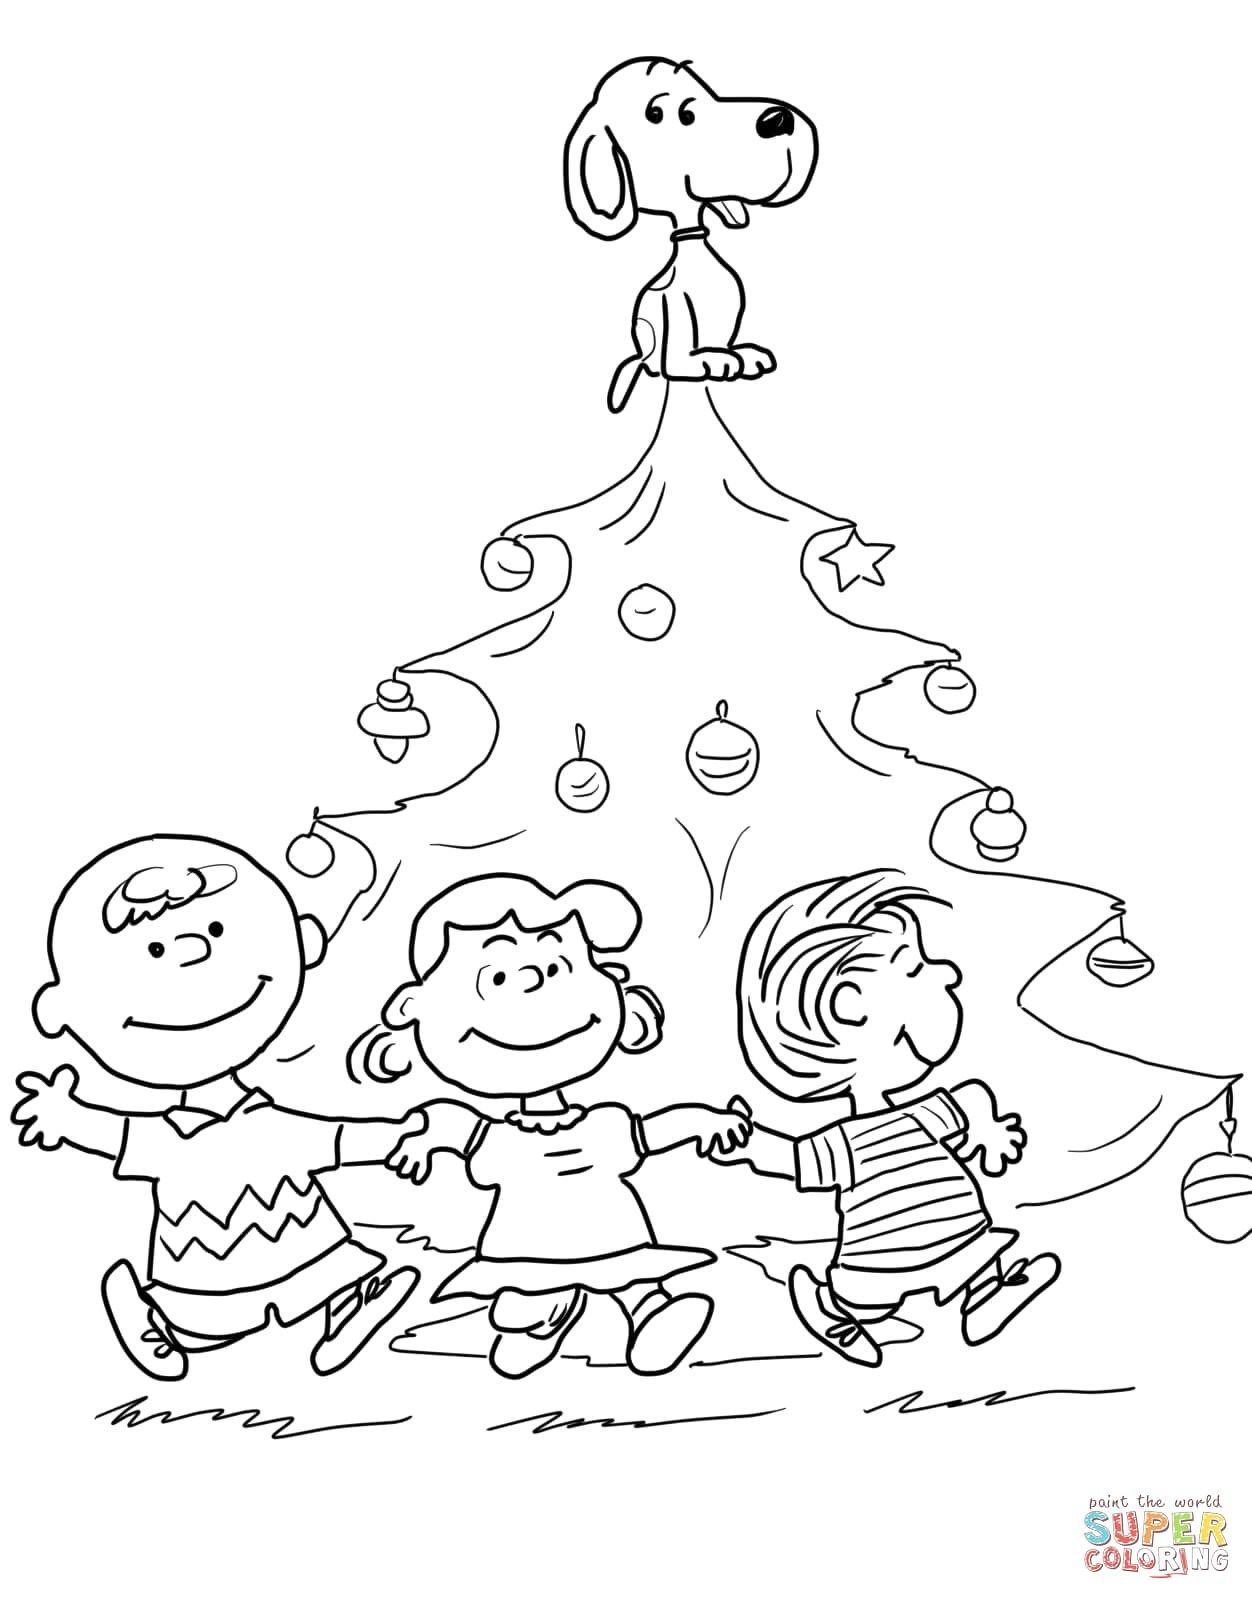 25 Best Image Of Peanuts Coloring Pages Tree Coloring Page